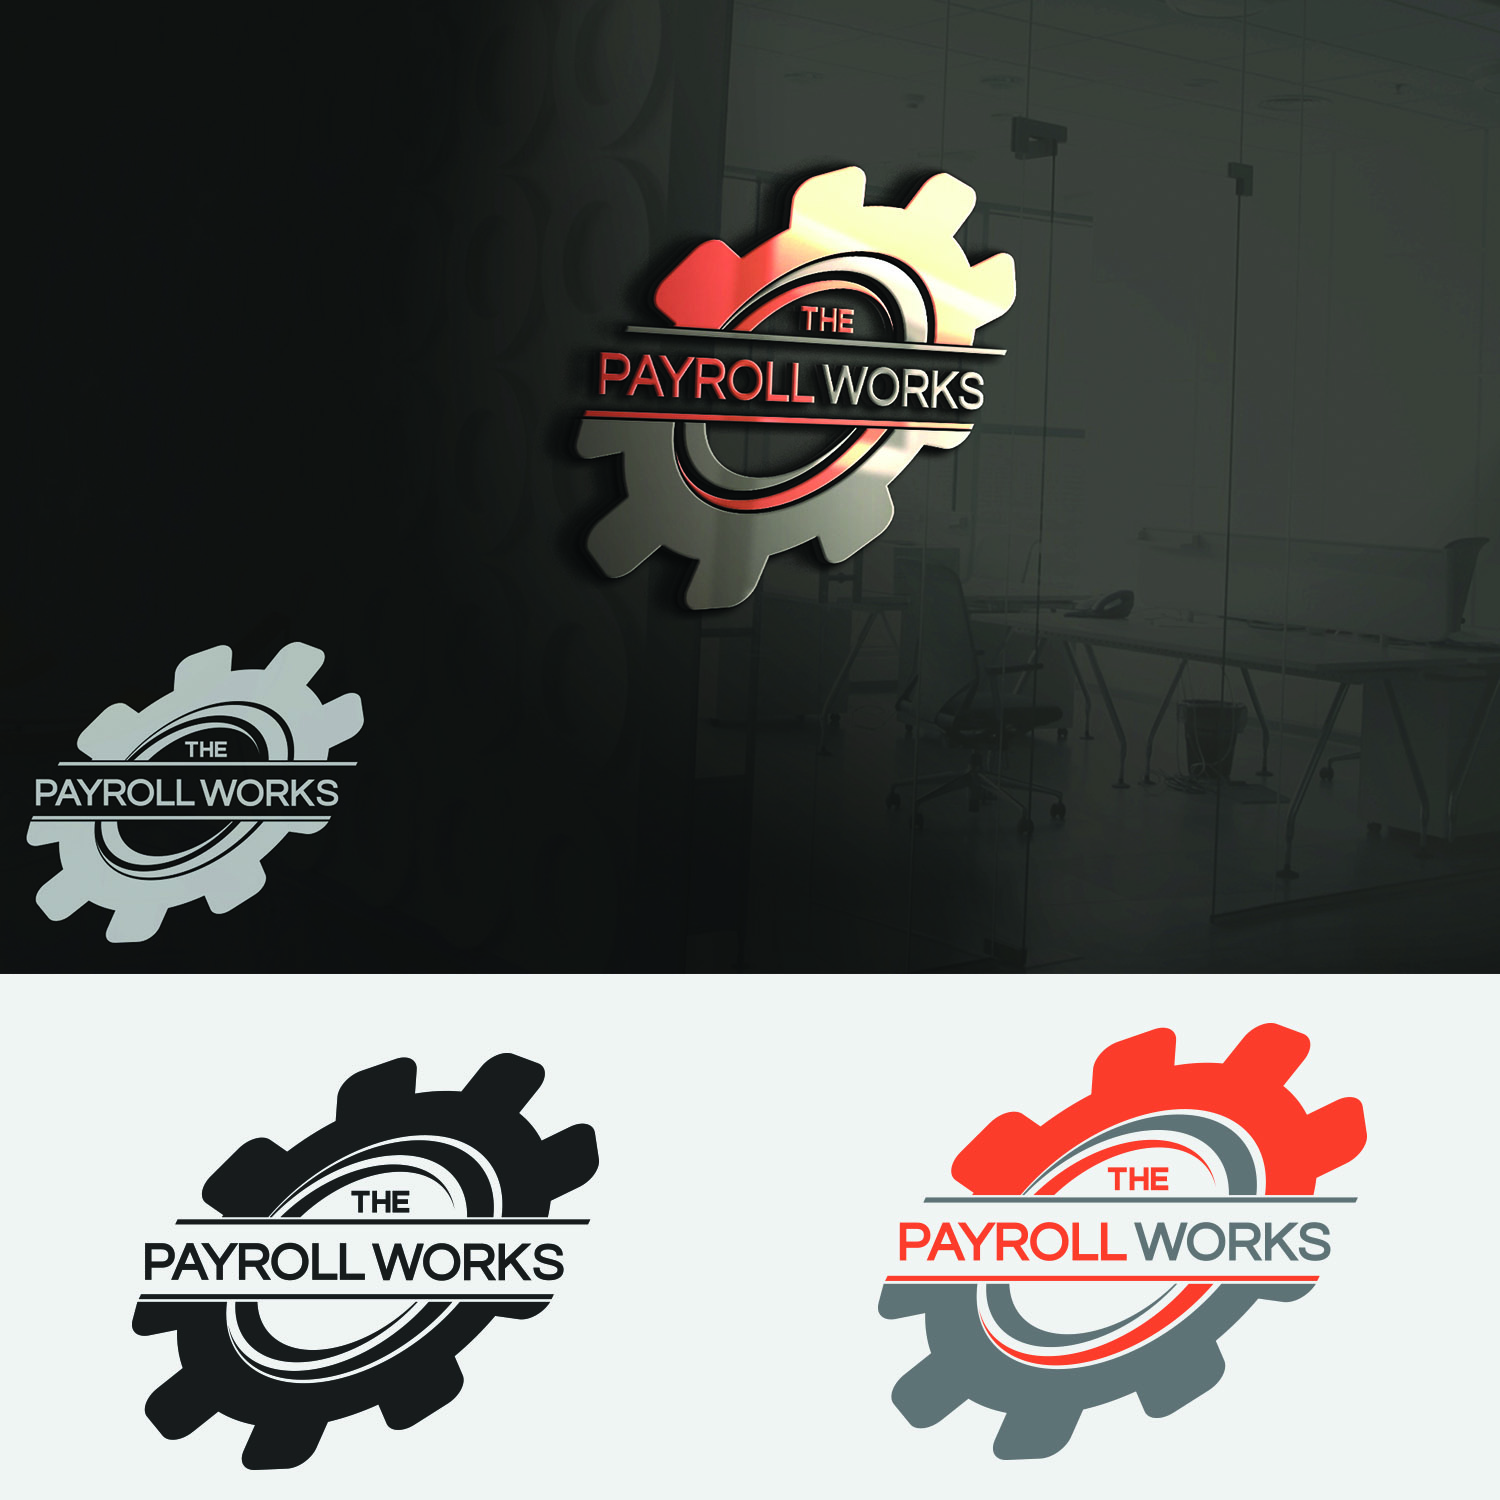 Logo Design by Umair ahmed Iqbal - Entry No. 103 in the Logo Design Contest Captivating Logo Design for The Payroll Works.